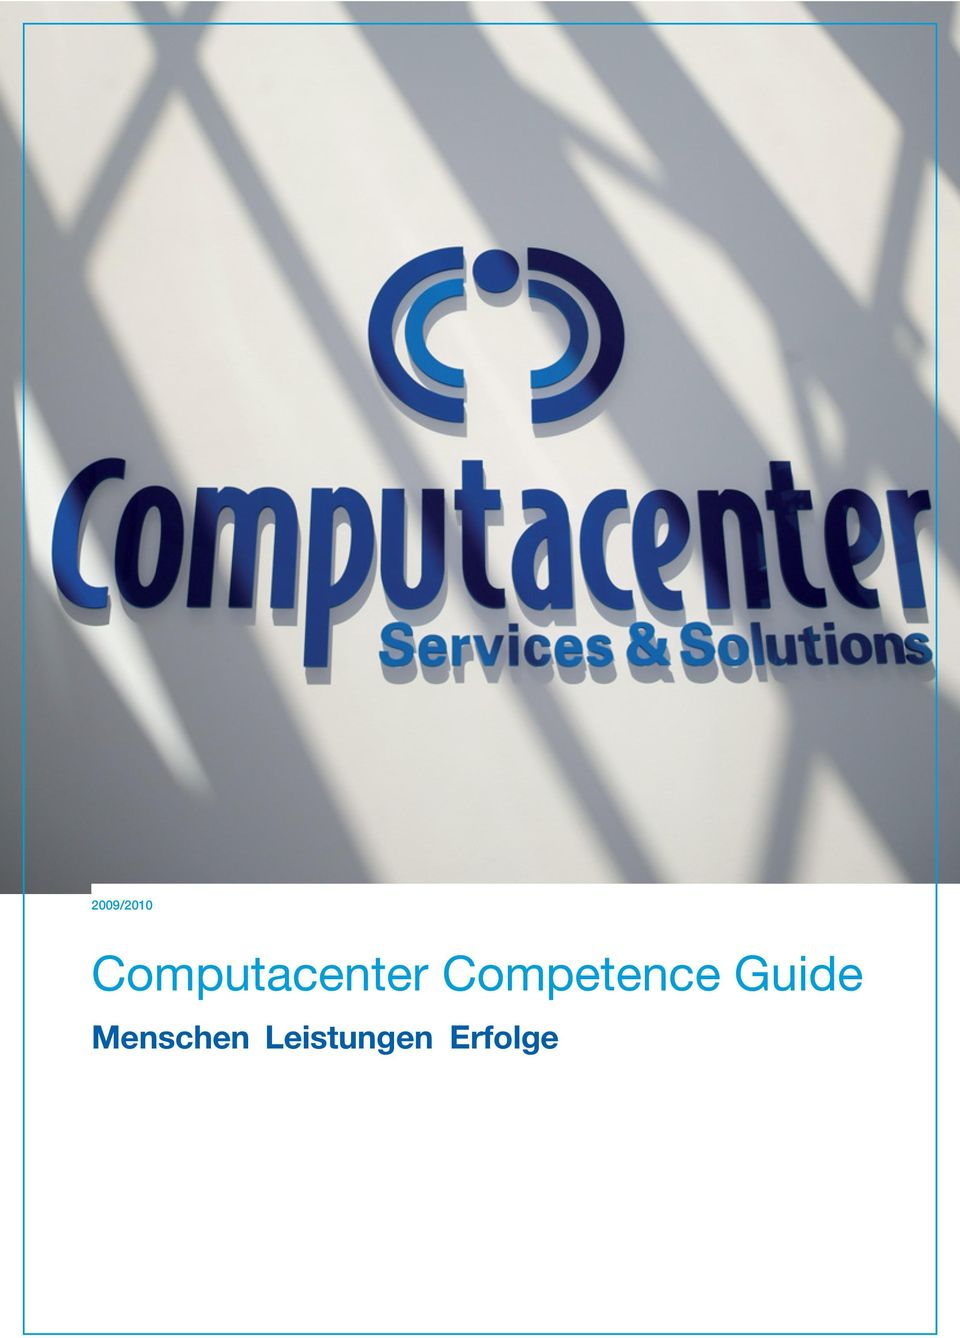 Competence Guide